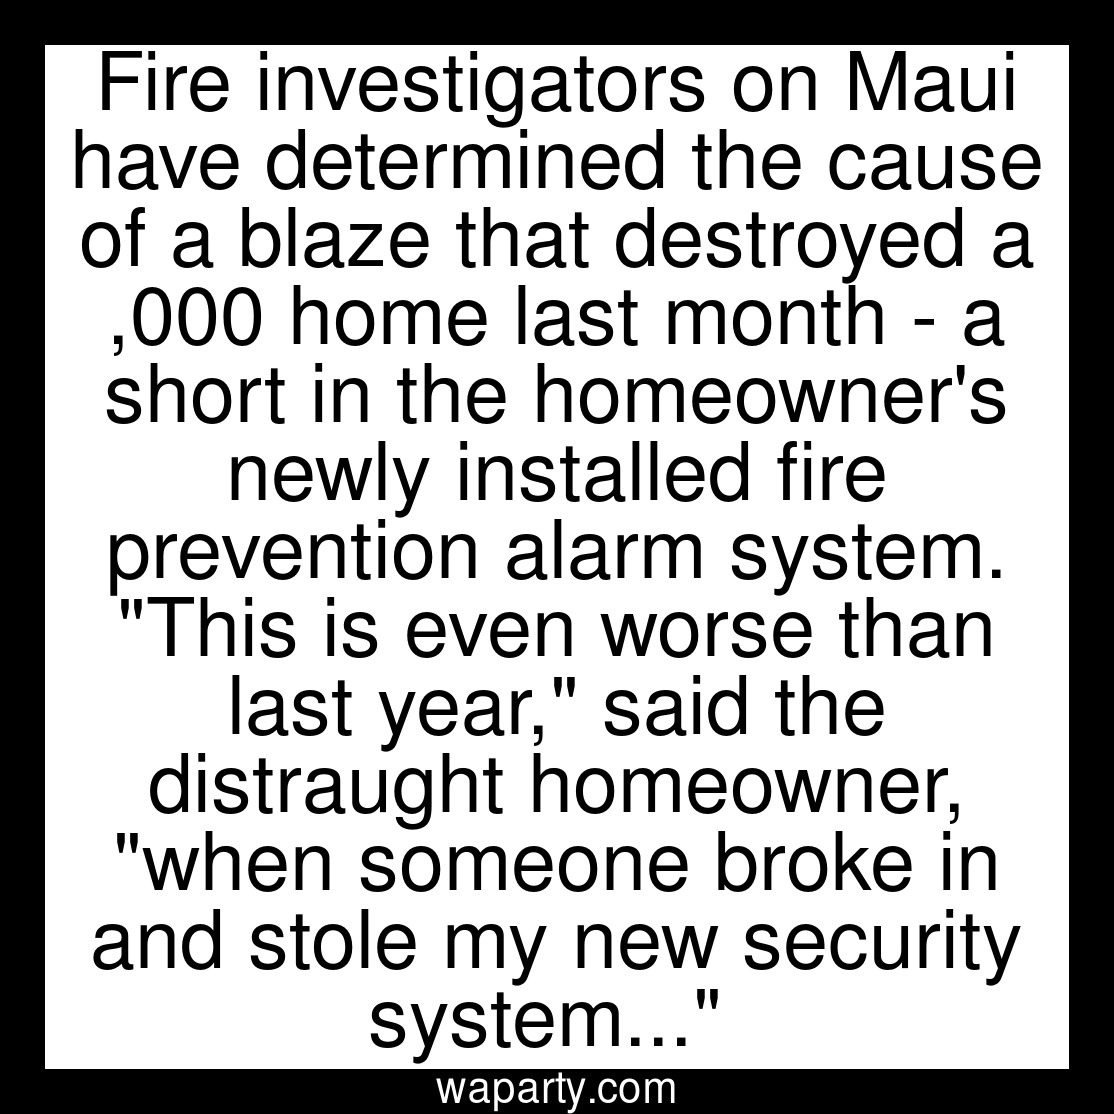 Fire investigators on Maui have determined the cause of a blaze that destroyed a $127,000 home last month - a short in the homeowners newly installed fire prevention alarm system. This is even worse than last year, said the distraught homeowner, when someone broke in and stole my new security system...